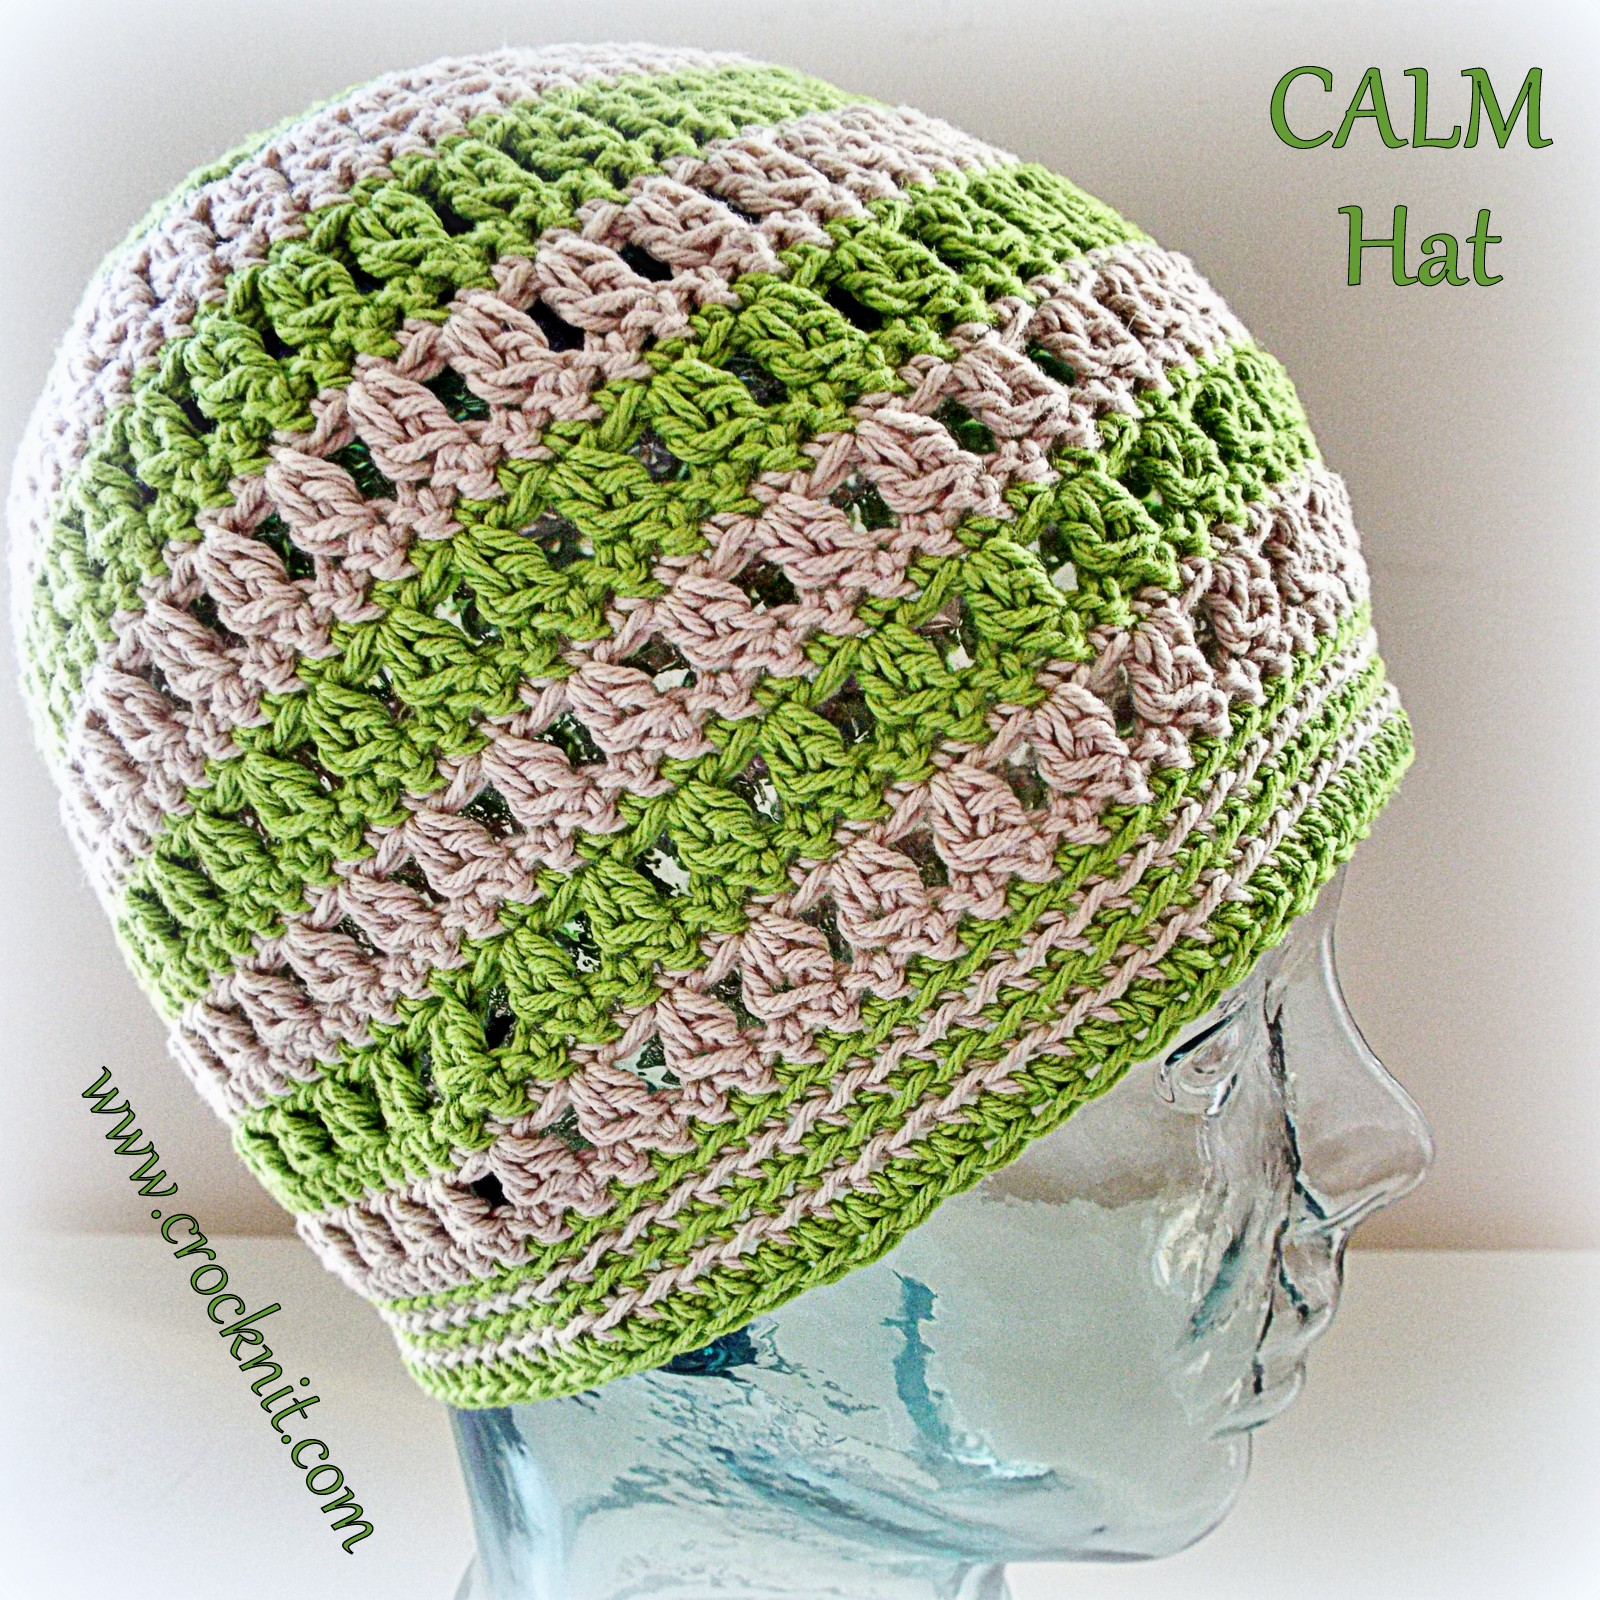 MICROCKNIT CREATIONS: SLEEP Hats Free Crochet Pattern #4 CALM HAT